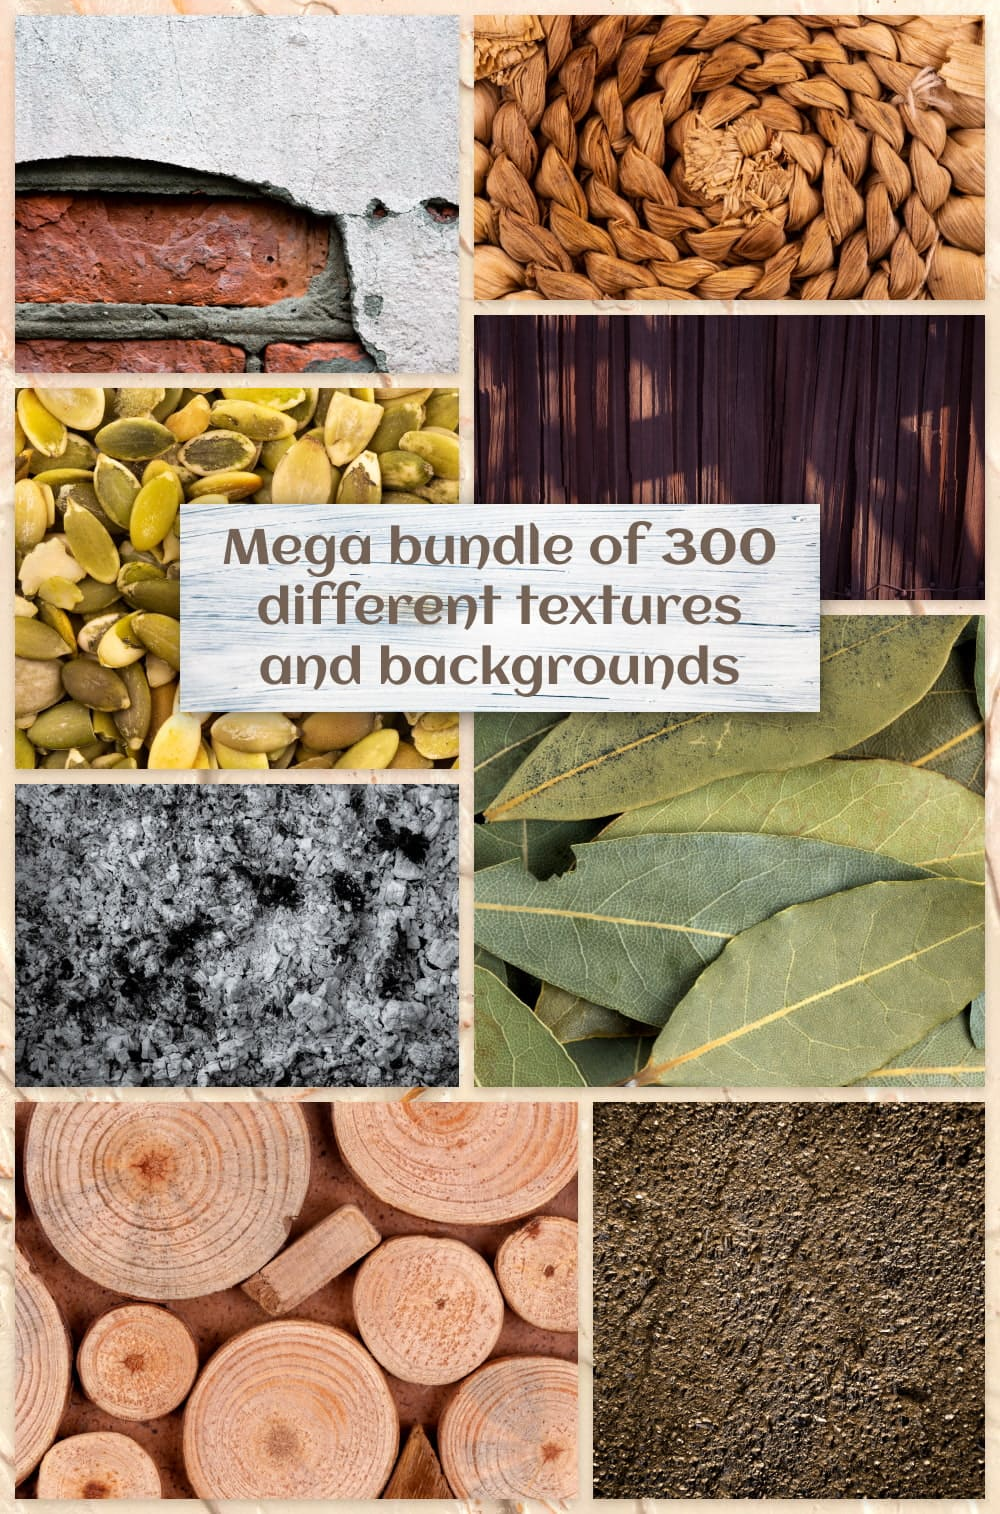 Mega Bundle of 300 Different Textures and Backgrounds Pinterest.